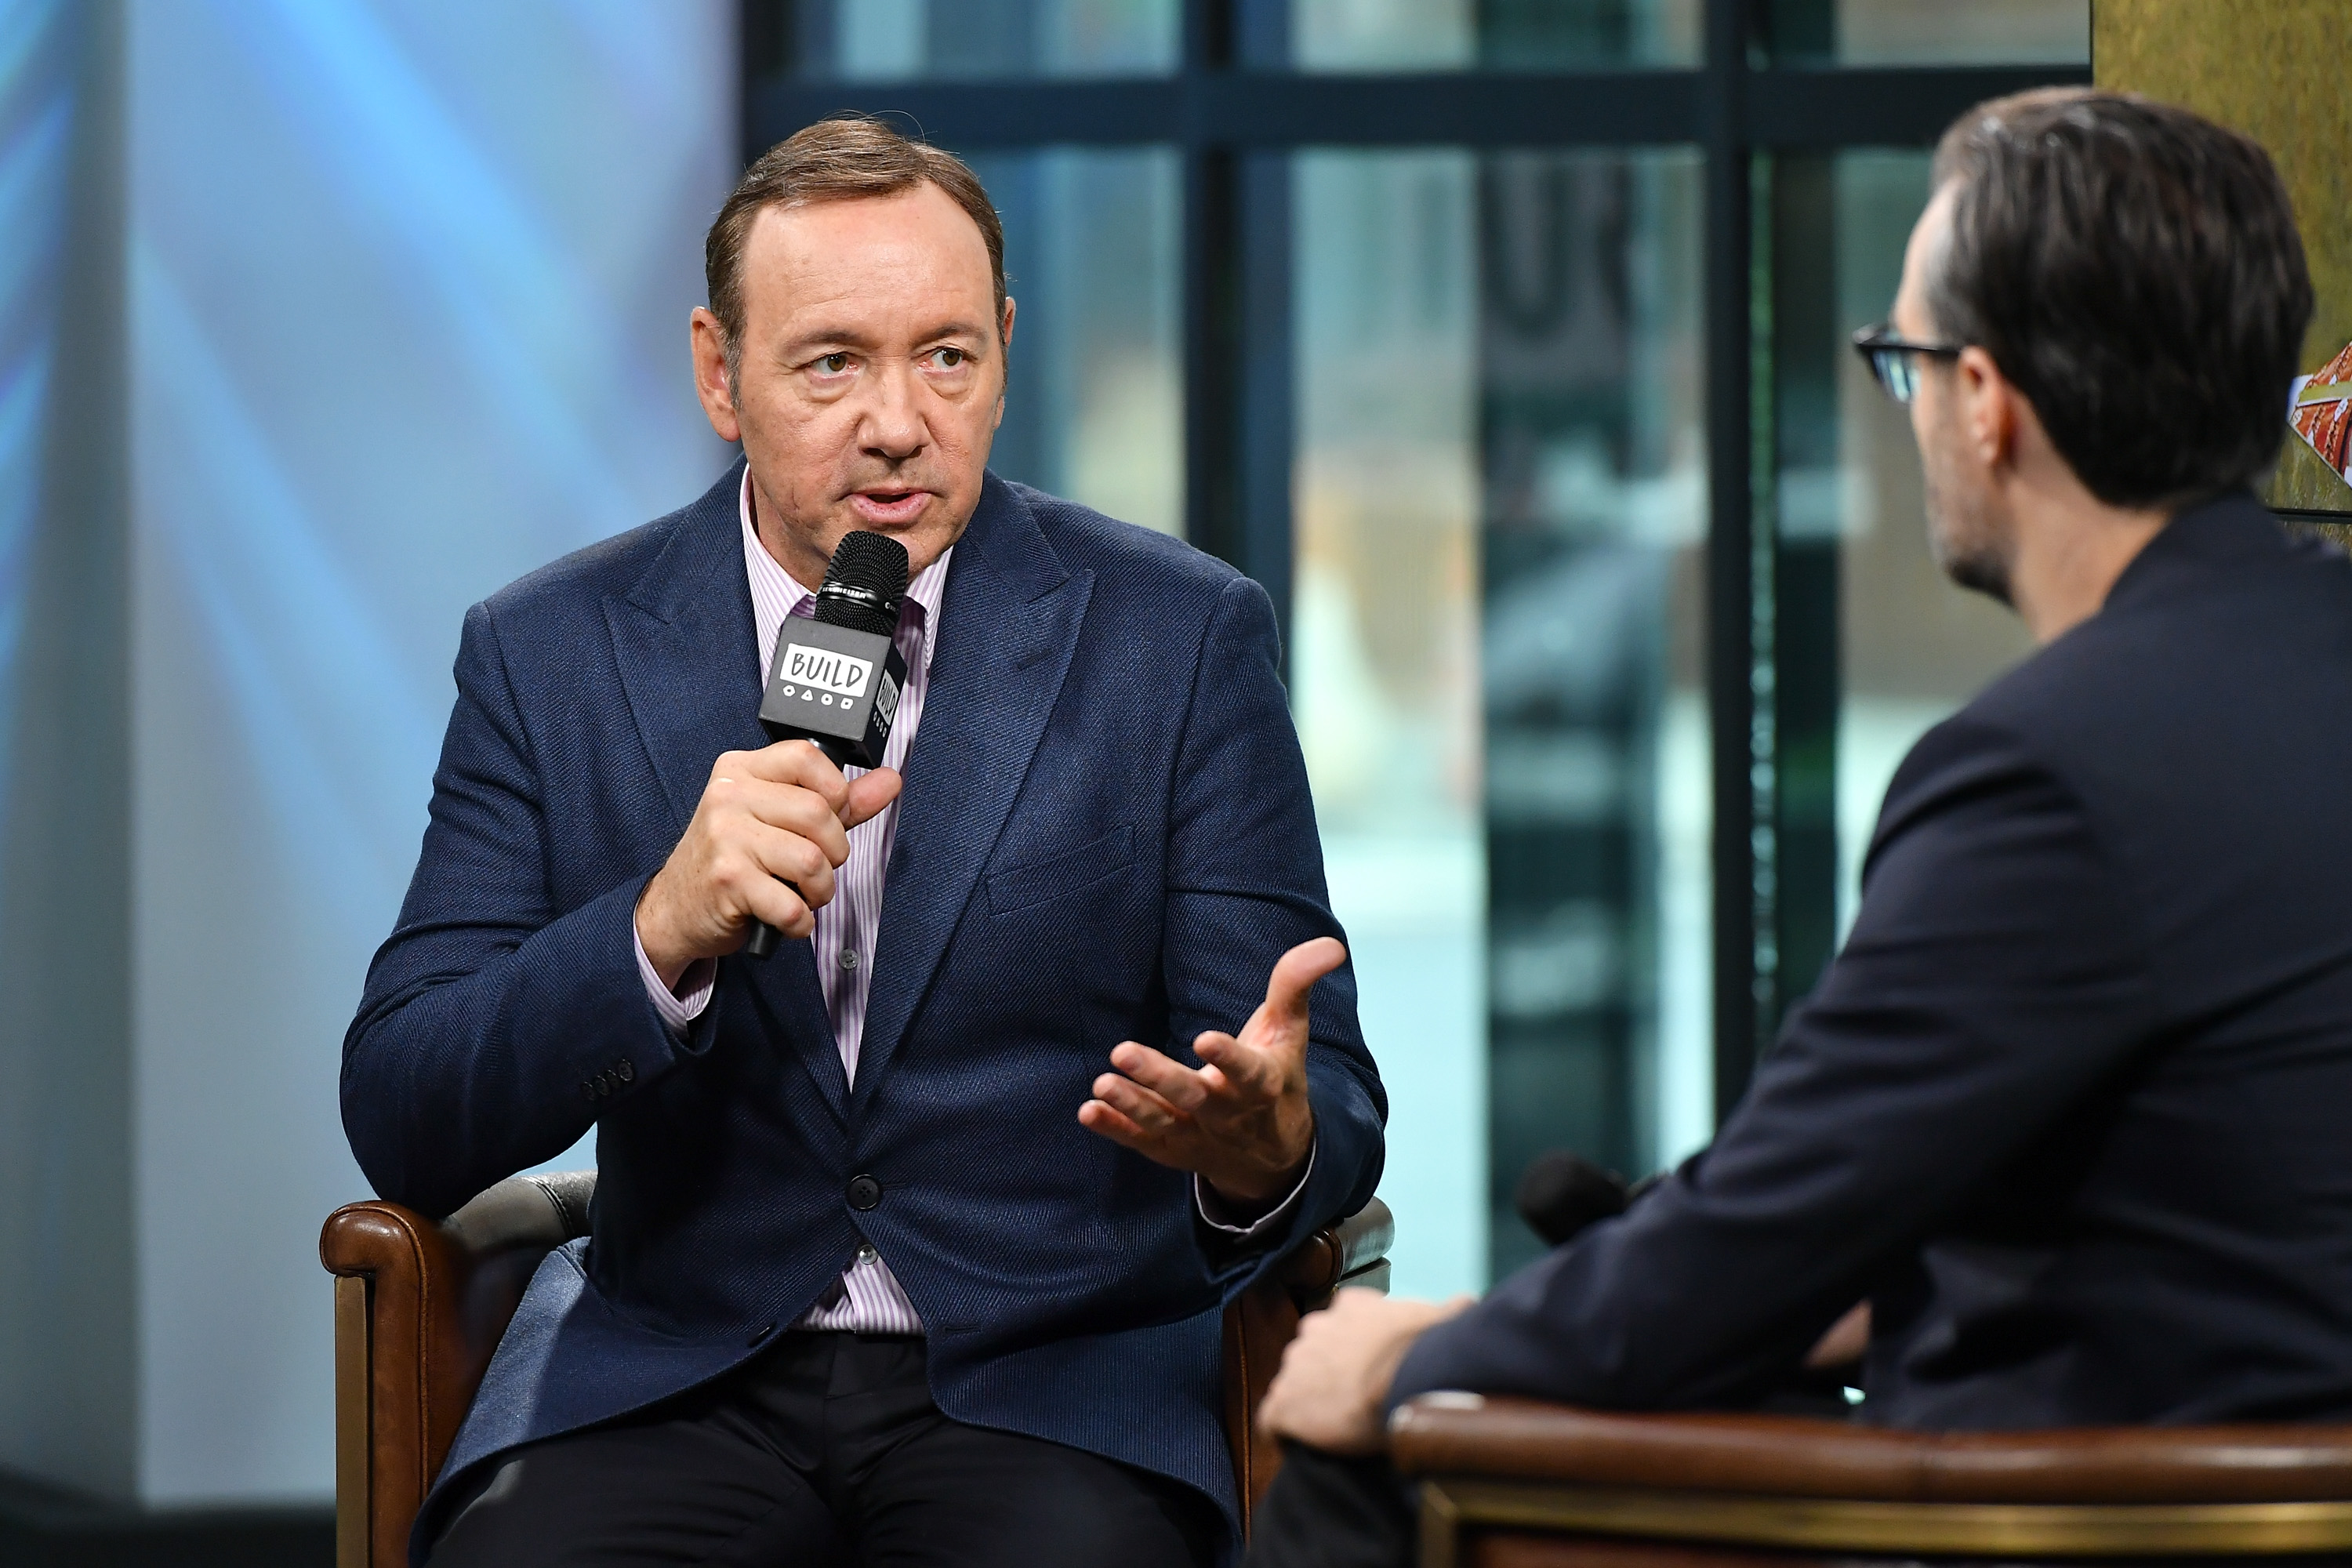 The sexual assault allegations against Kevin Spacey span decades. Here's what we know.